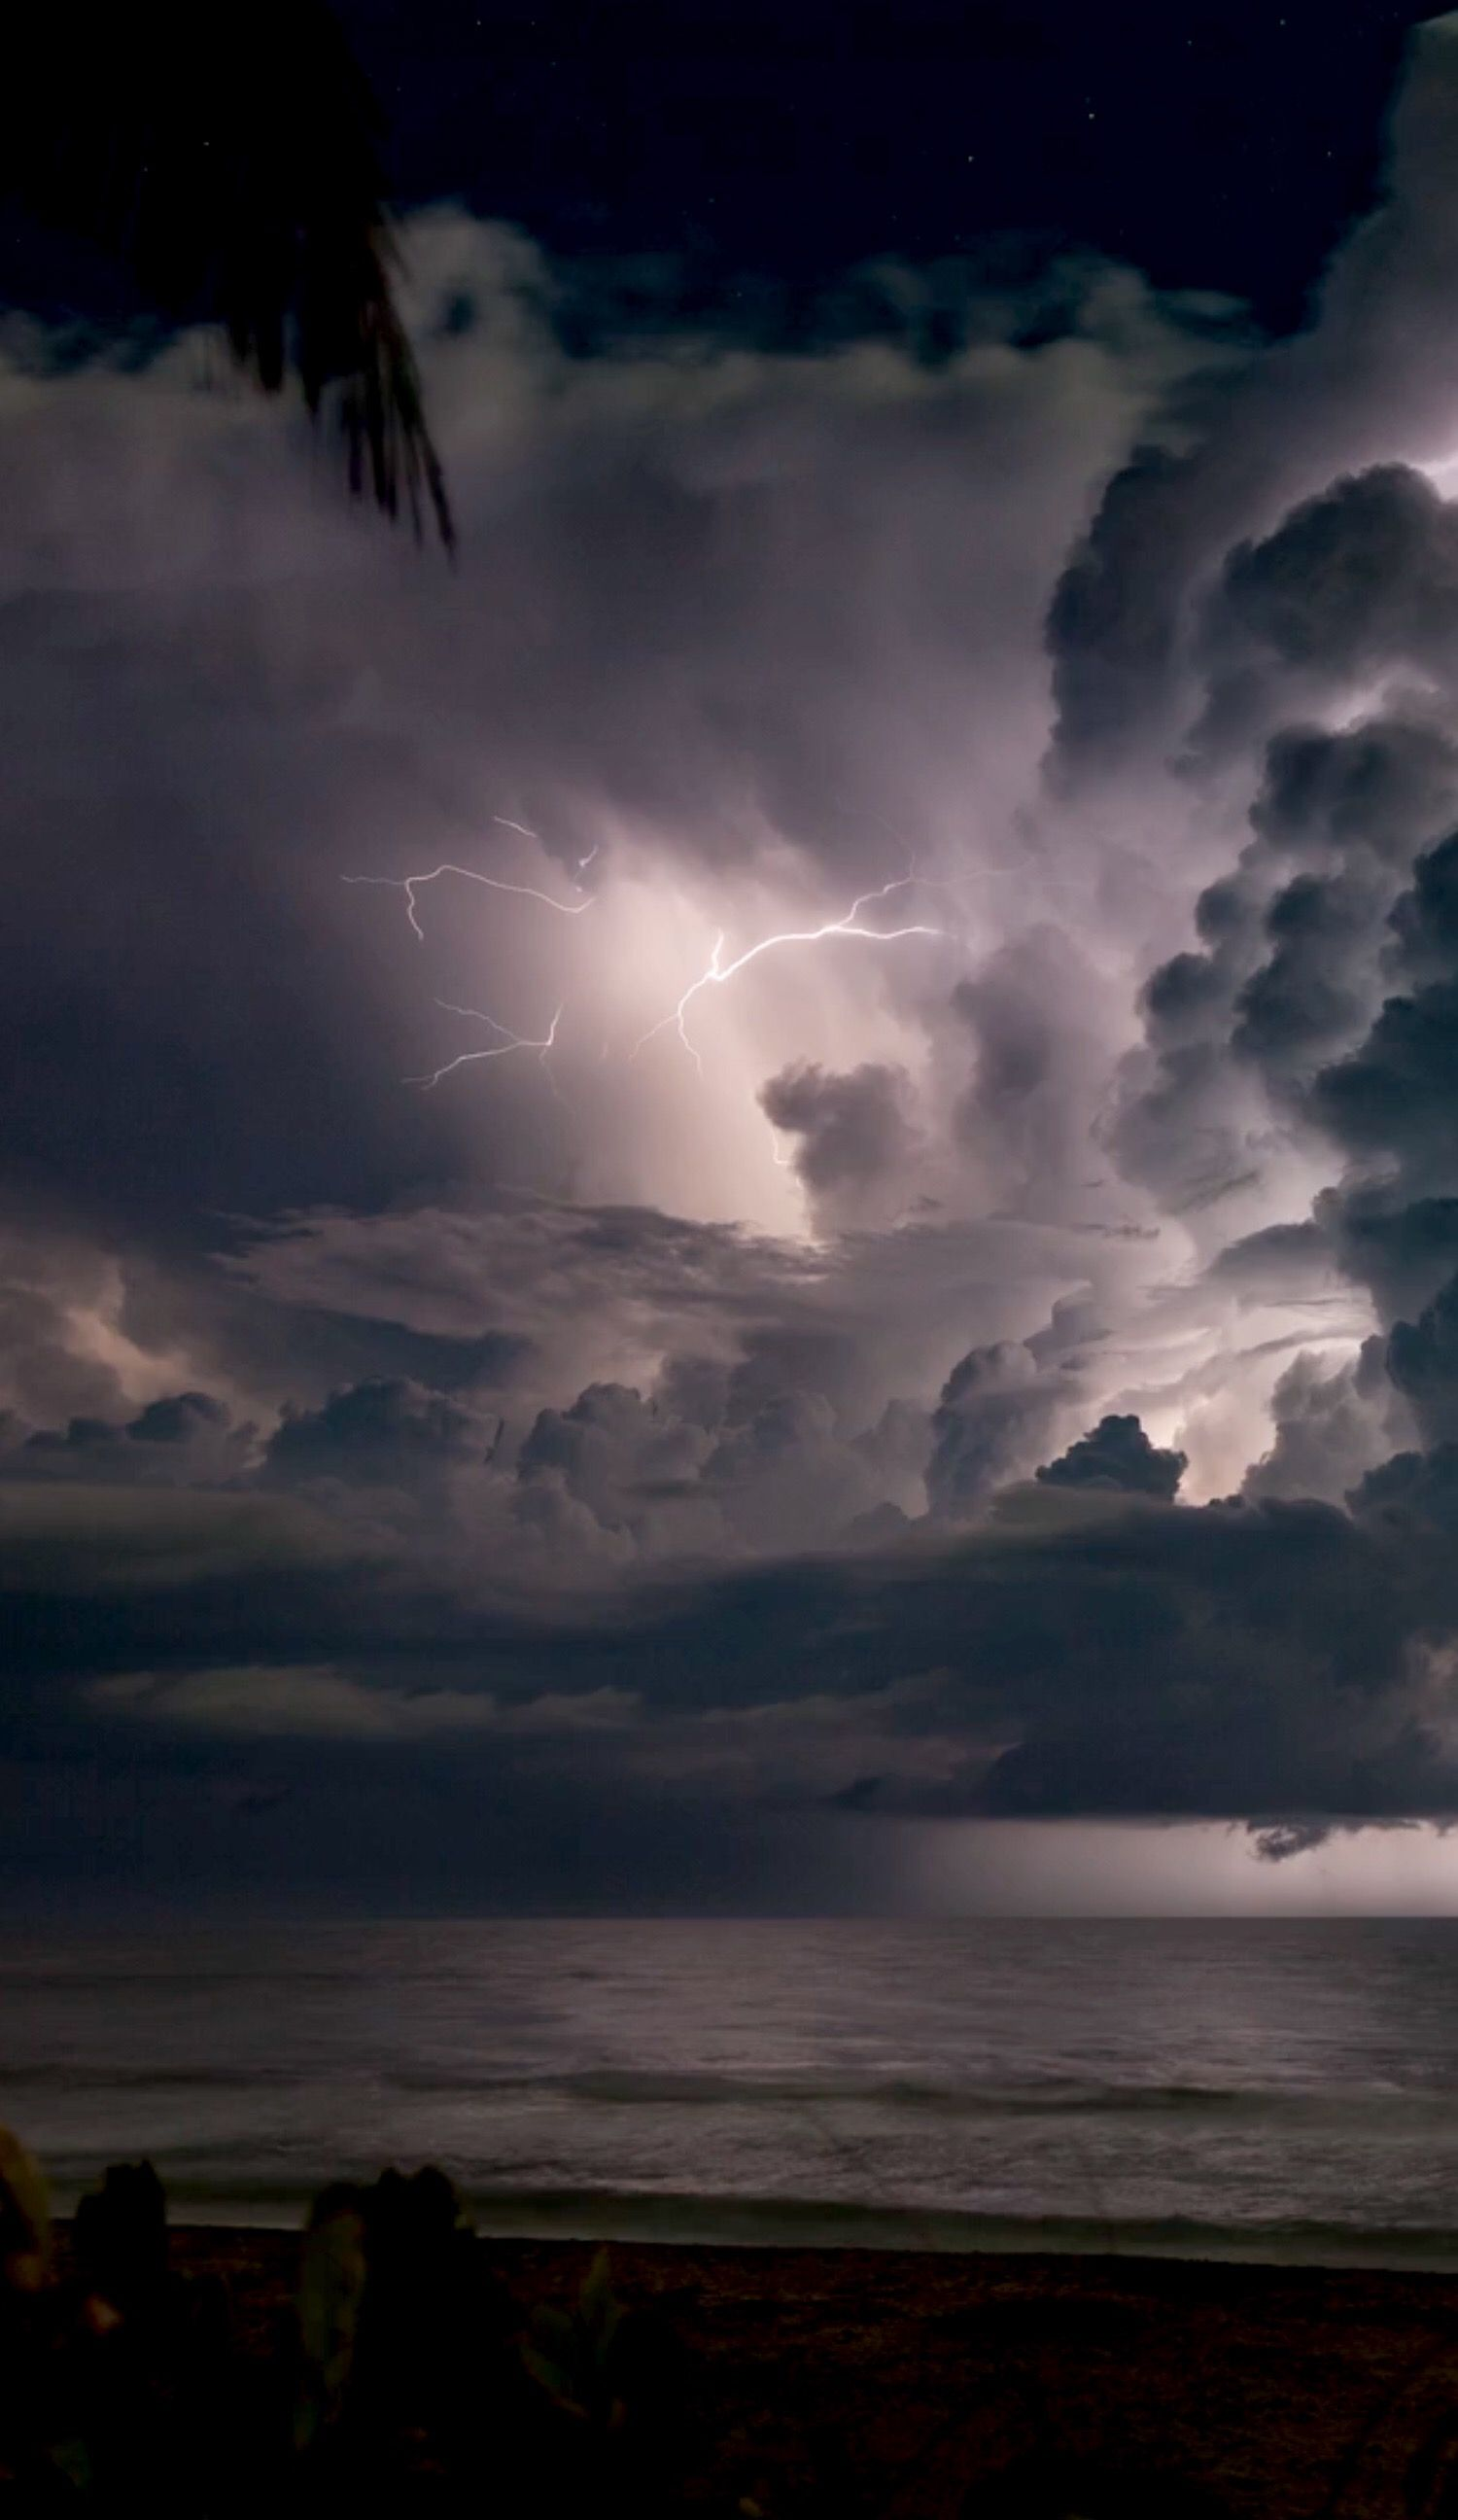 Tornadoes, Thunderstorms, Supercell Thunderstorm, Severe Storms, Live Wallpapers, Clouds, Weather